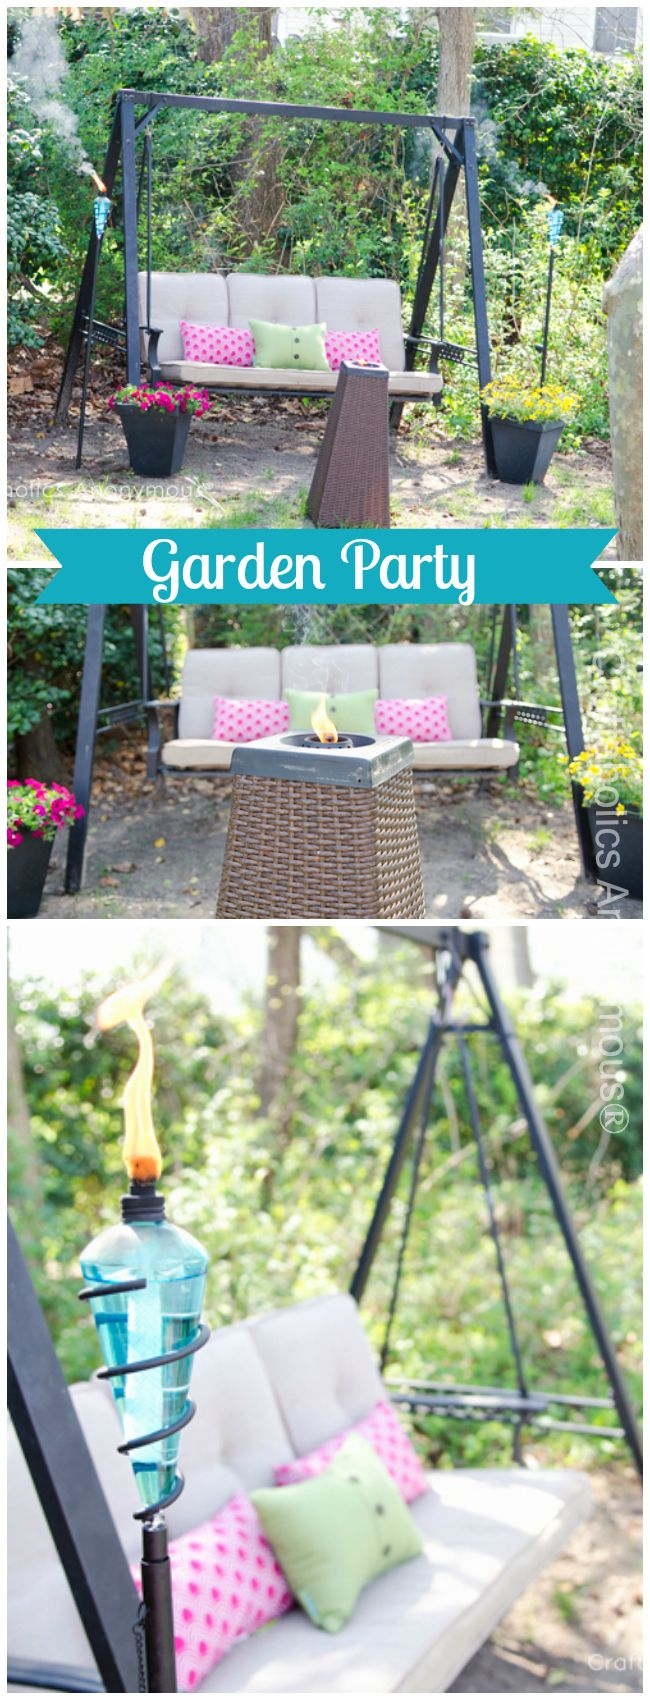 Gardening And Outdoor Decor Outdoor Garden Party Decor Object Your Daily Dose Of Best Home Decorating Ideas Interior Design Inspiration